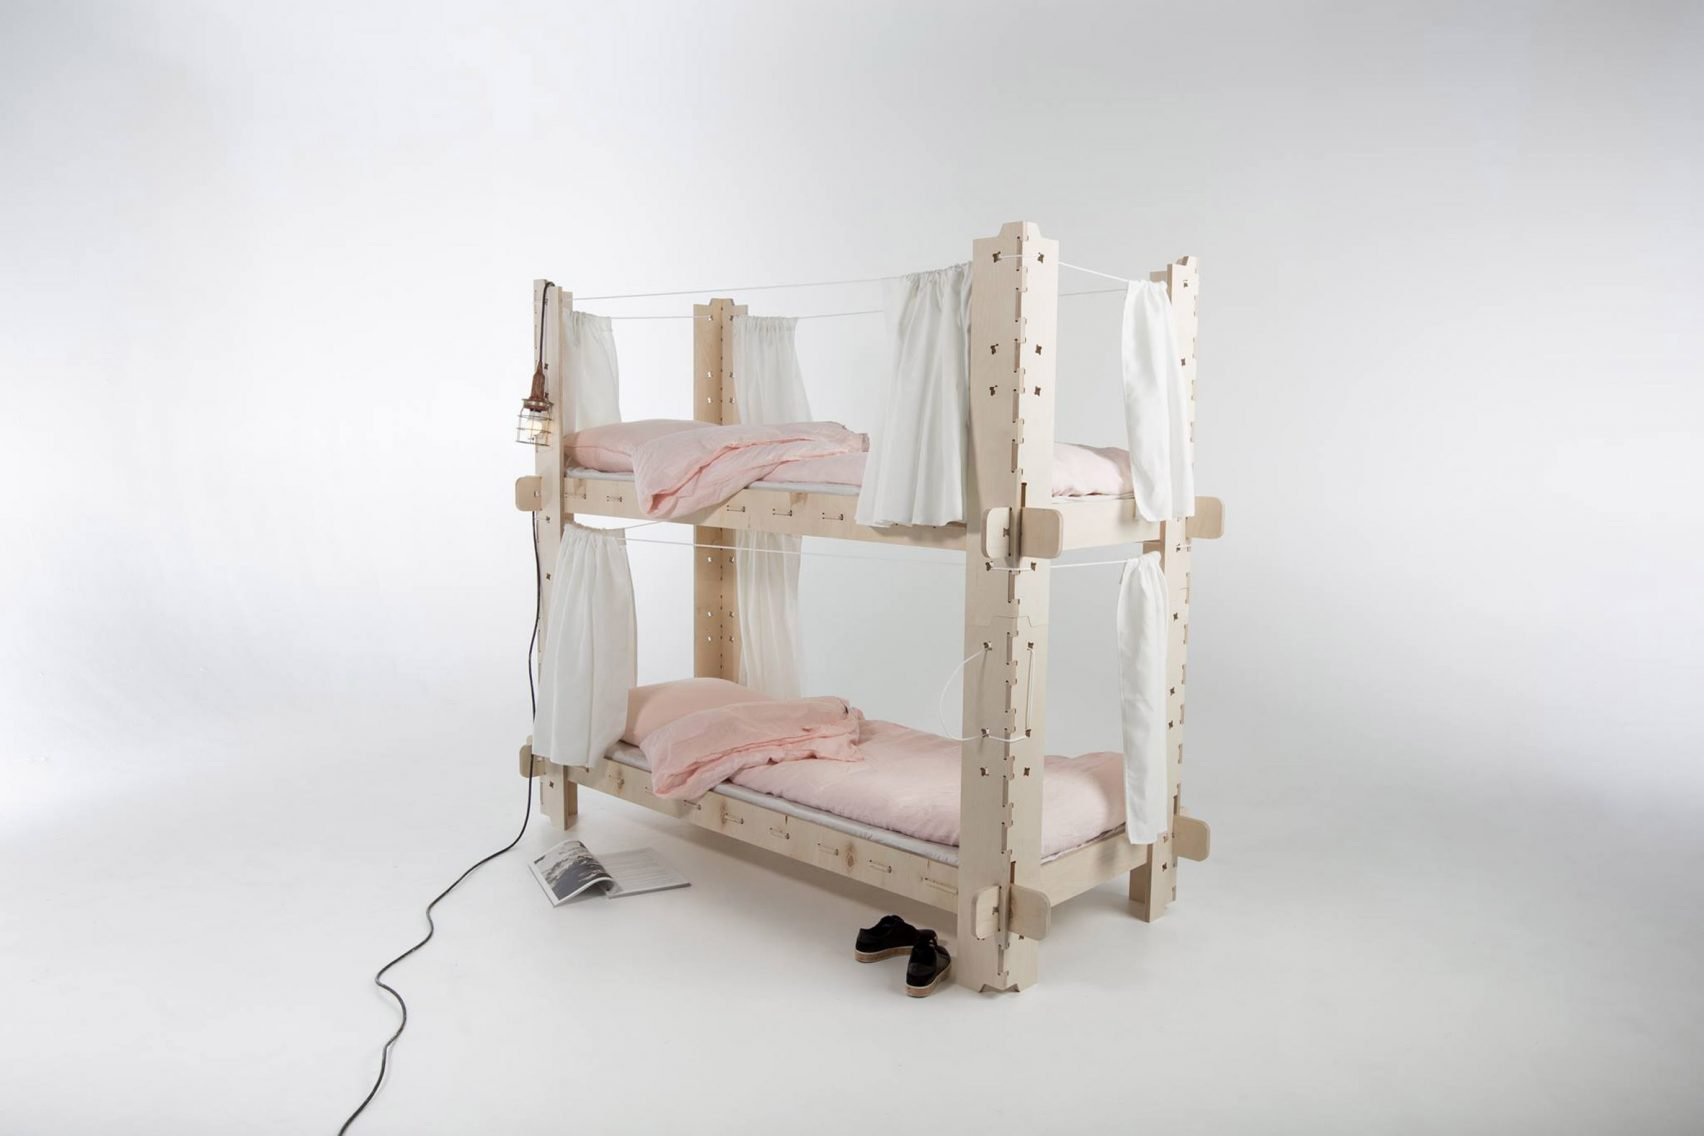 Students Design Temporary Furniture For Displaced People